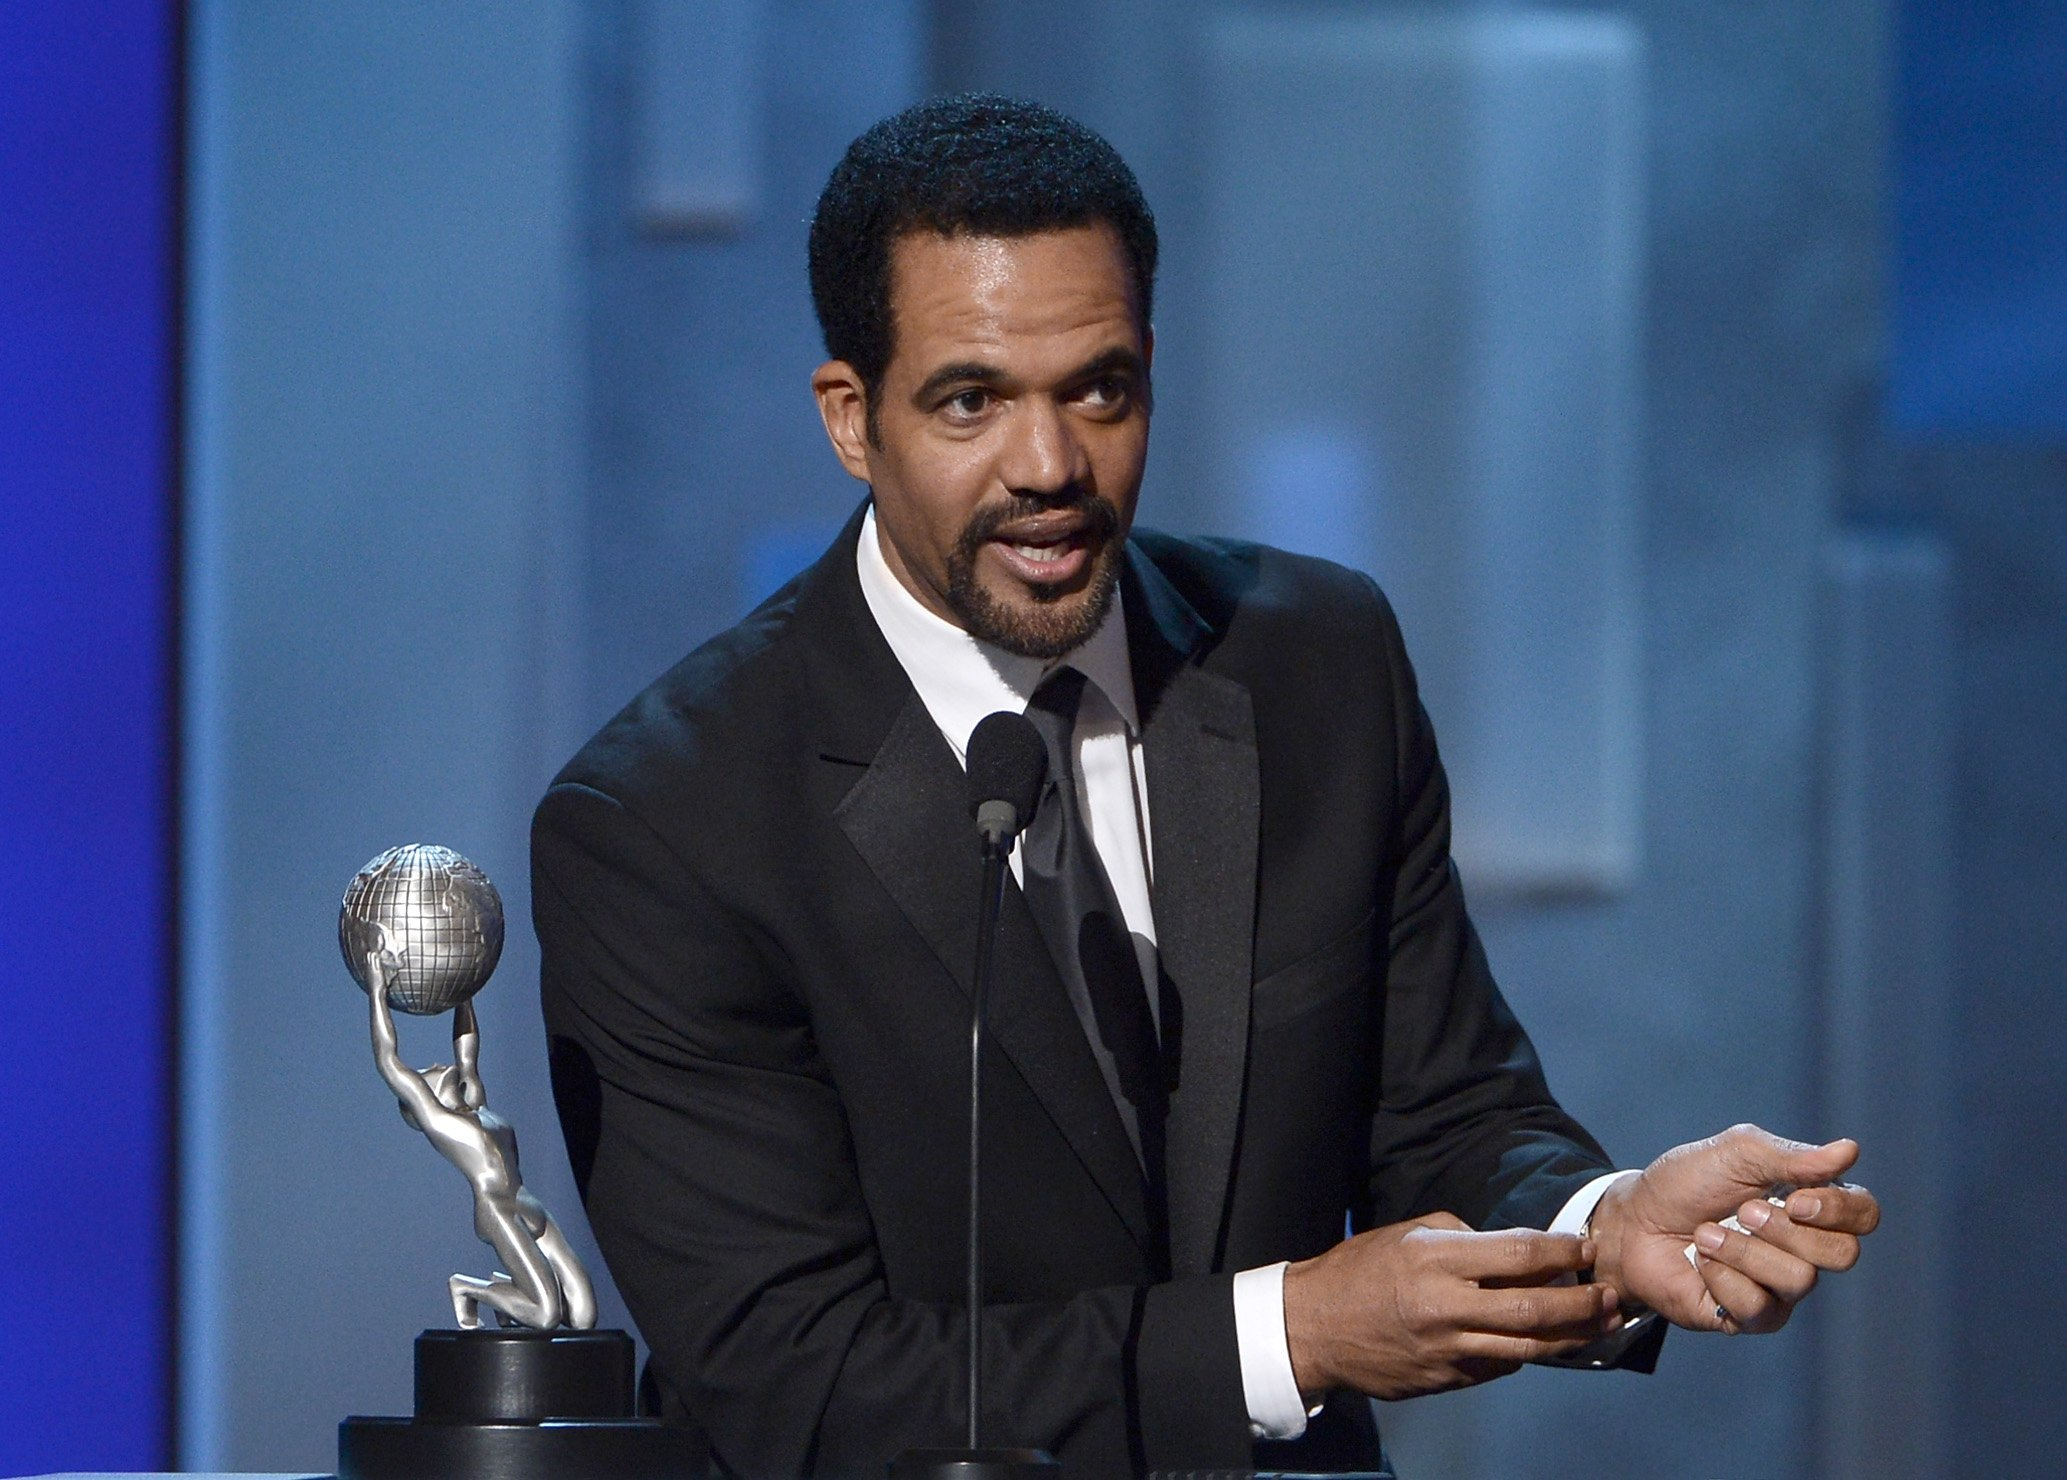 The Young And The Restless' Star Kristoff St. John Passes Away At The Age Of 52